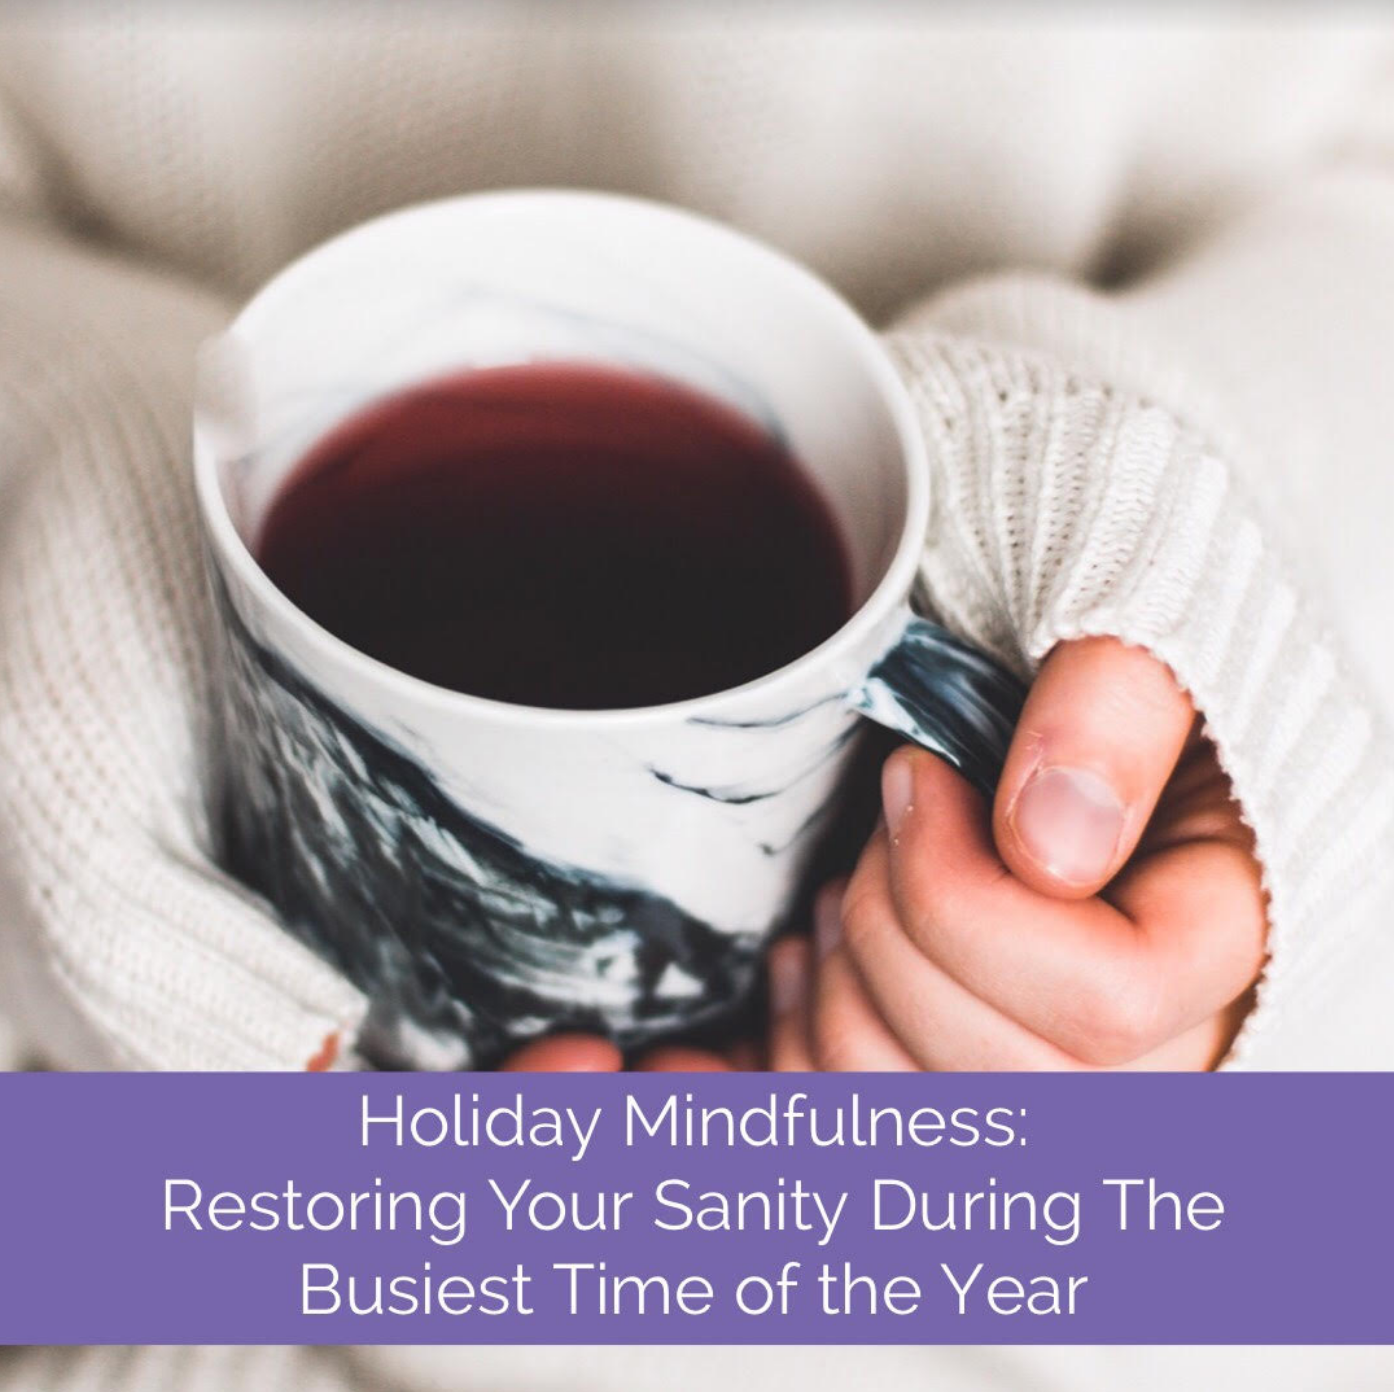 Holiday Mindfulness: Restoring Your Sanity During The Busiest Time of the Year